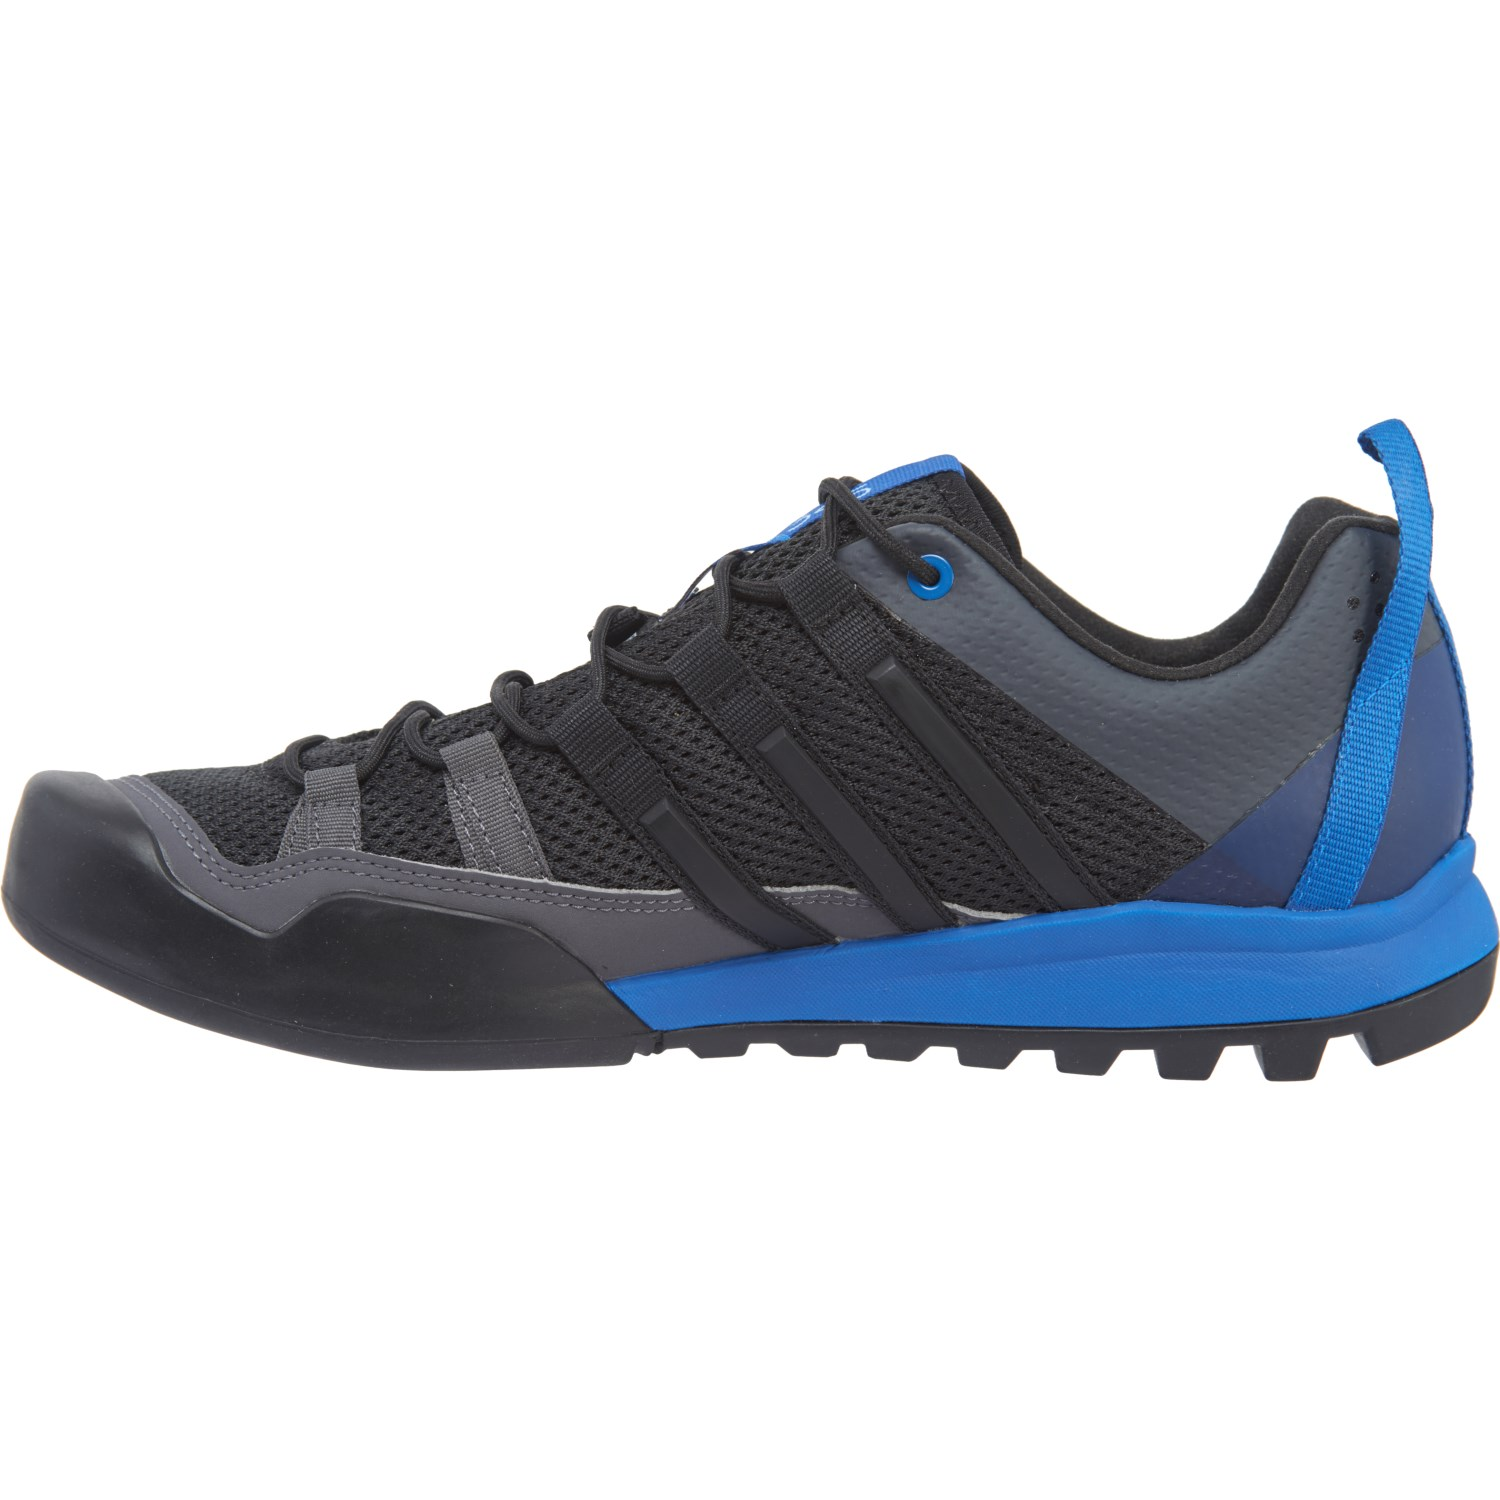 25a440eb79def adidas Terrex Solo Hiking Shoes (For Men)